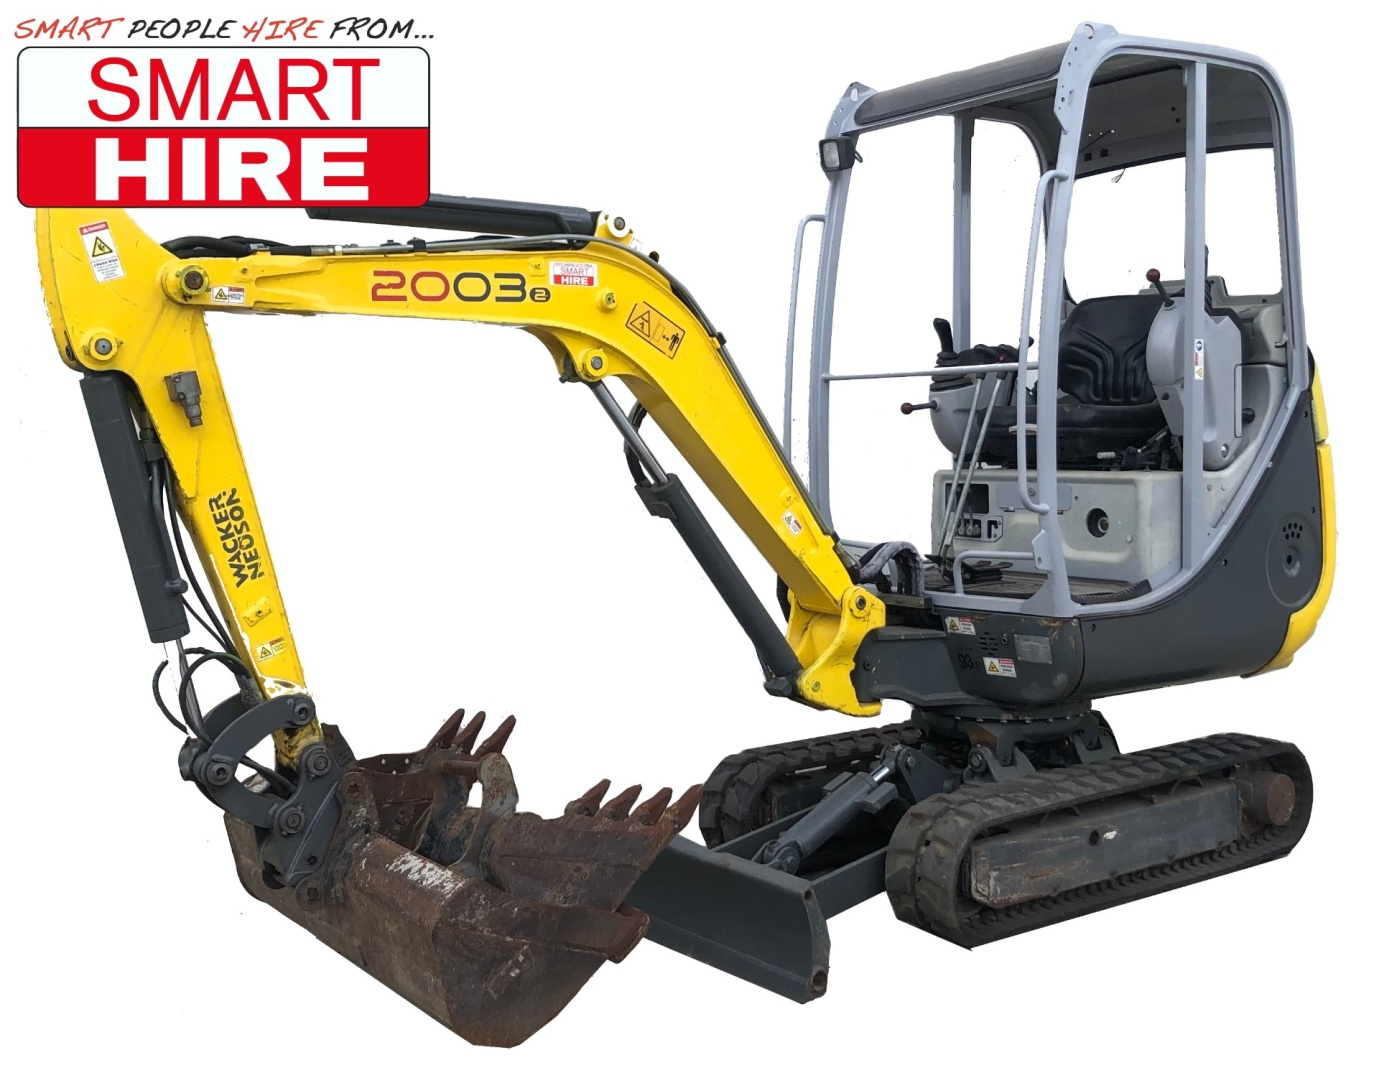 https://www.carnegierental.com.au/sites/default/files/1.9%20ton%20excavator_0.jpg